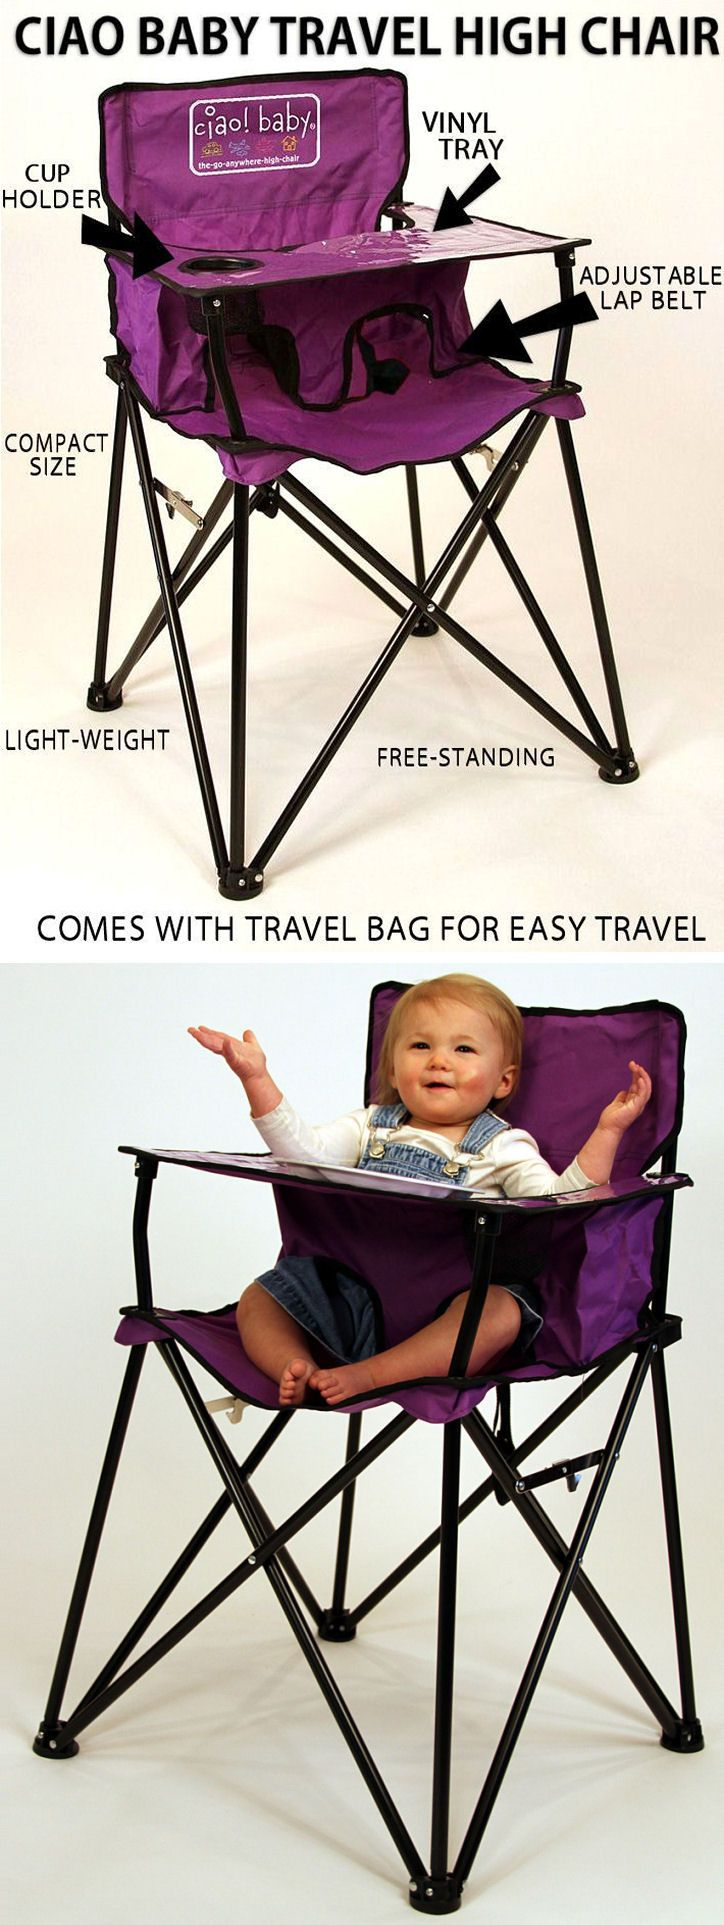 Portable Baby High Chair Folds Up For Easy Travel Great